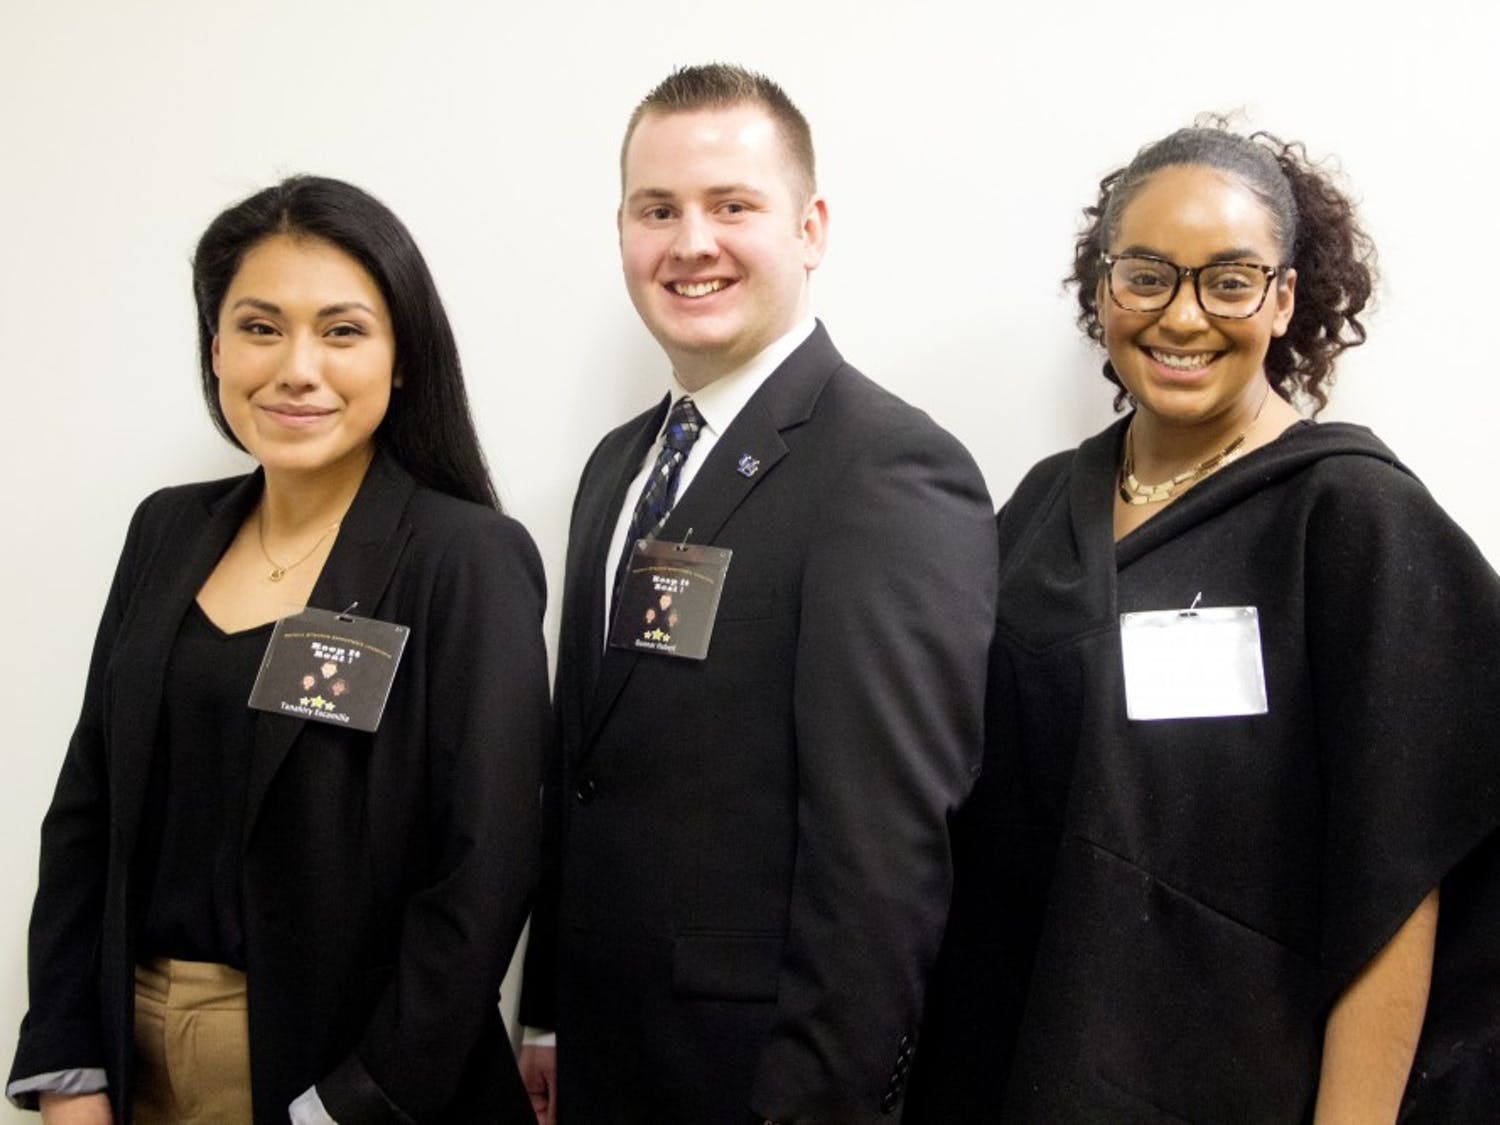 """Treasurer candidateTanahiry Escamilla, presidential candidate Gunnar Haberl and vice presidential candidateAnyssa Evelyn are running unopposed for SA e-board on the R.E.A.L. party ticket. The candidates said their main goal is to """"restore effective, accountable leadership."""""""